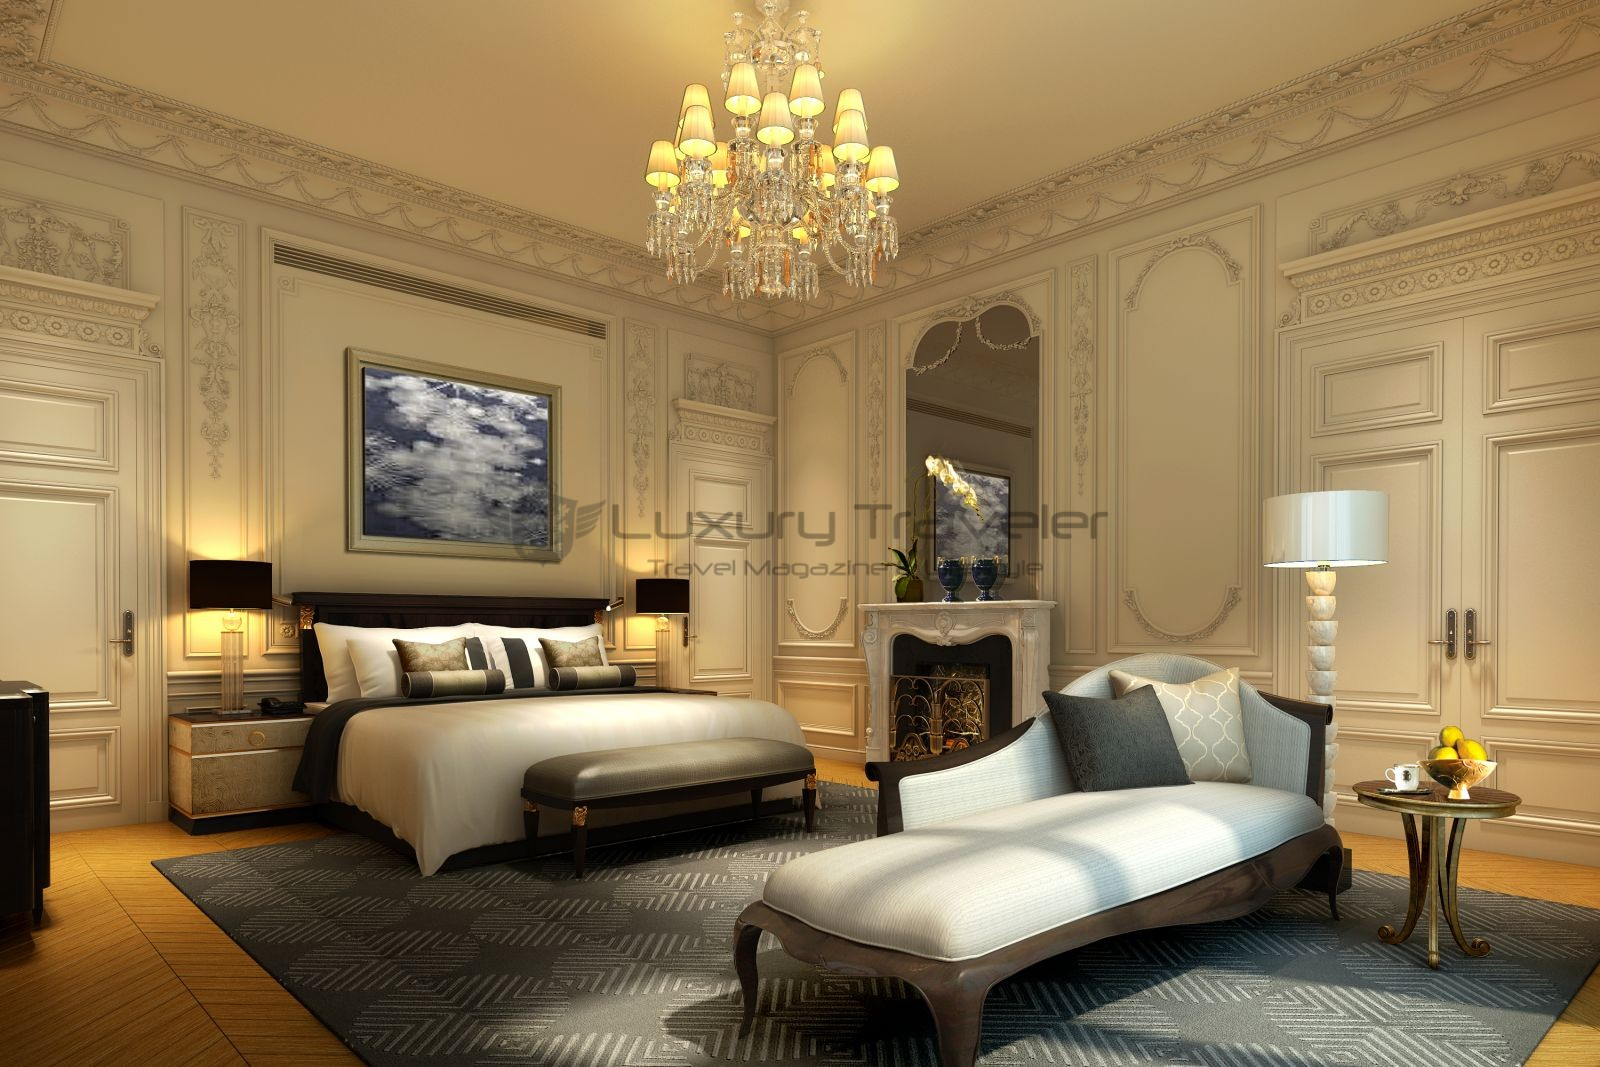 The peninsula luxury 5 star hotel paris luxury traveler for Luxury hotels all over the world